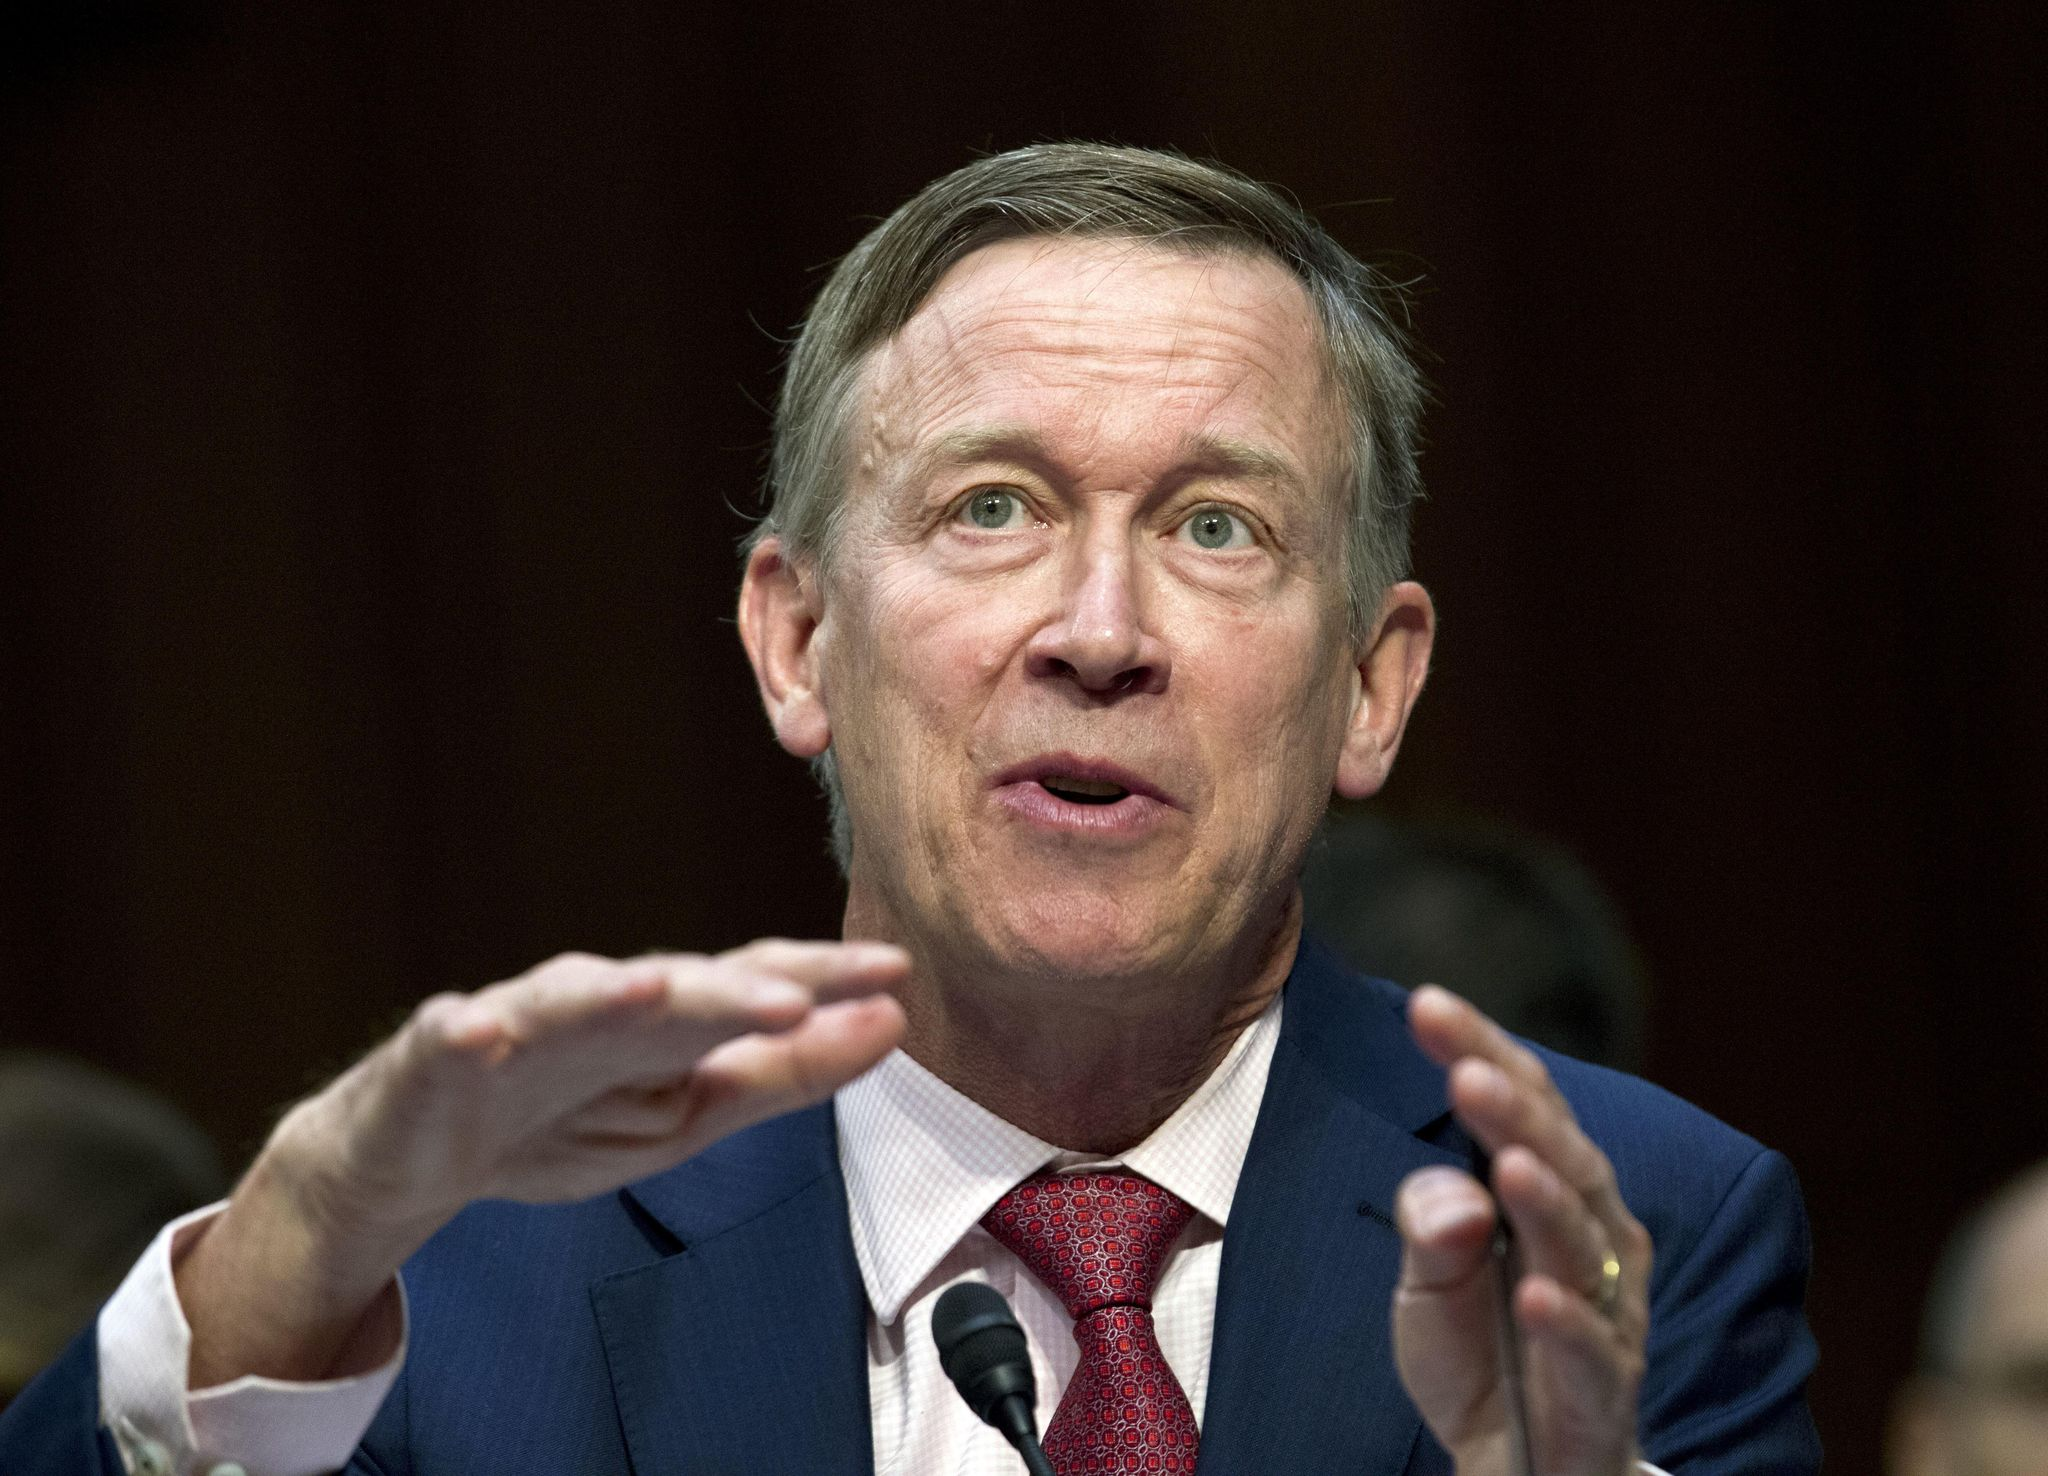 John Hickenlooper moves toward 2020 White House bid with 'Giddy Up PAC'